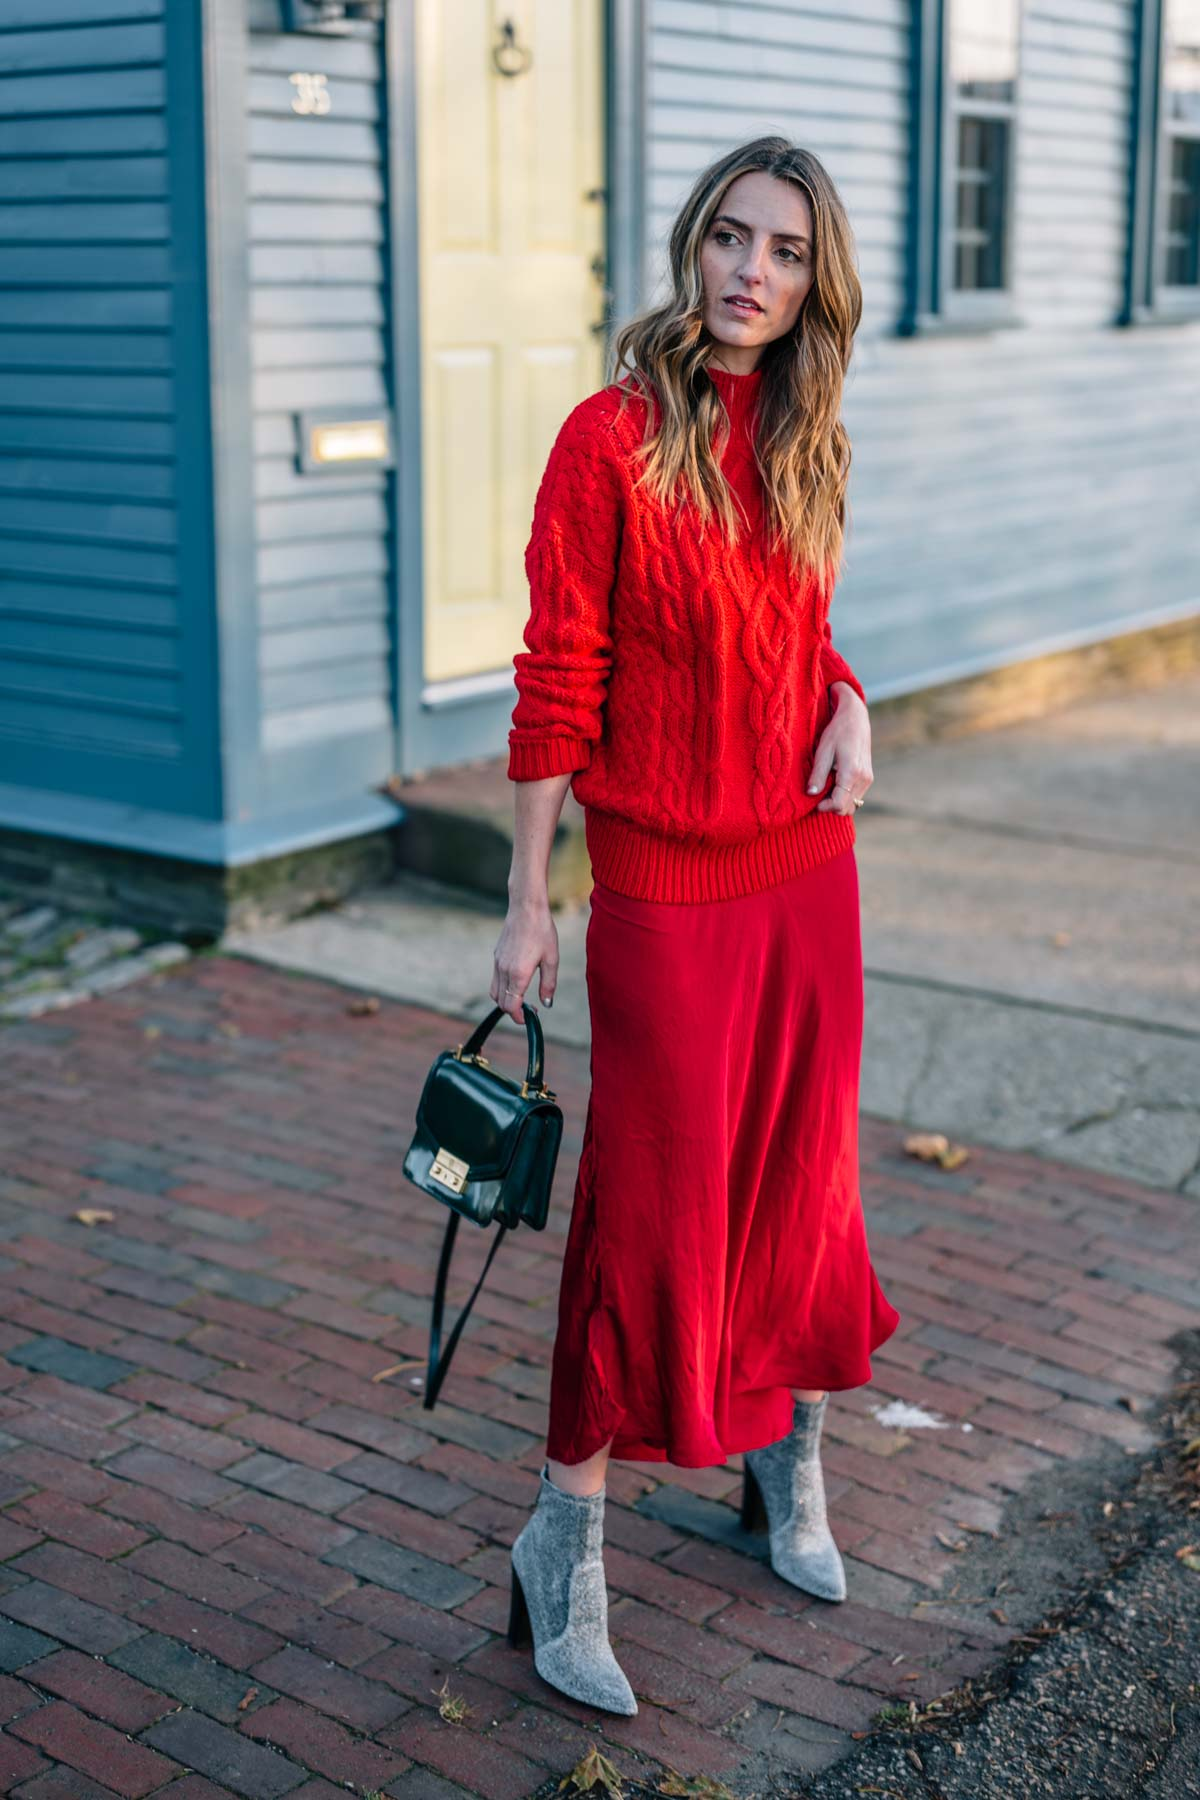 Jess Ann Kirby styles a holiday look with a red cable knit sweater and tory burch Juliette mini bag